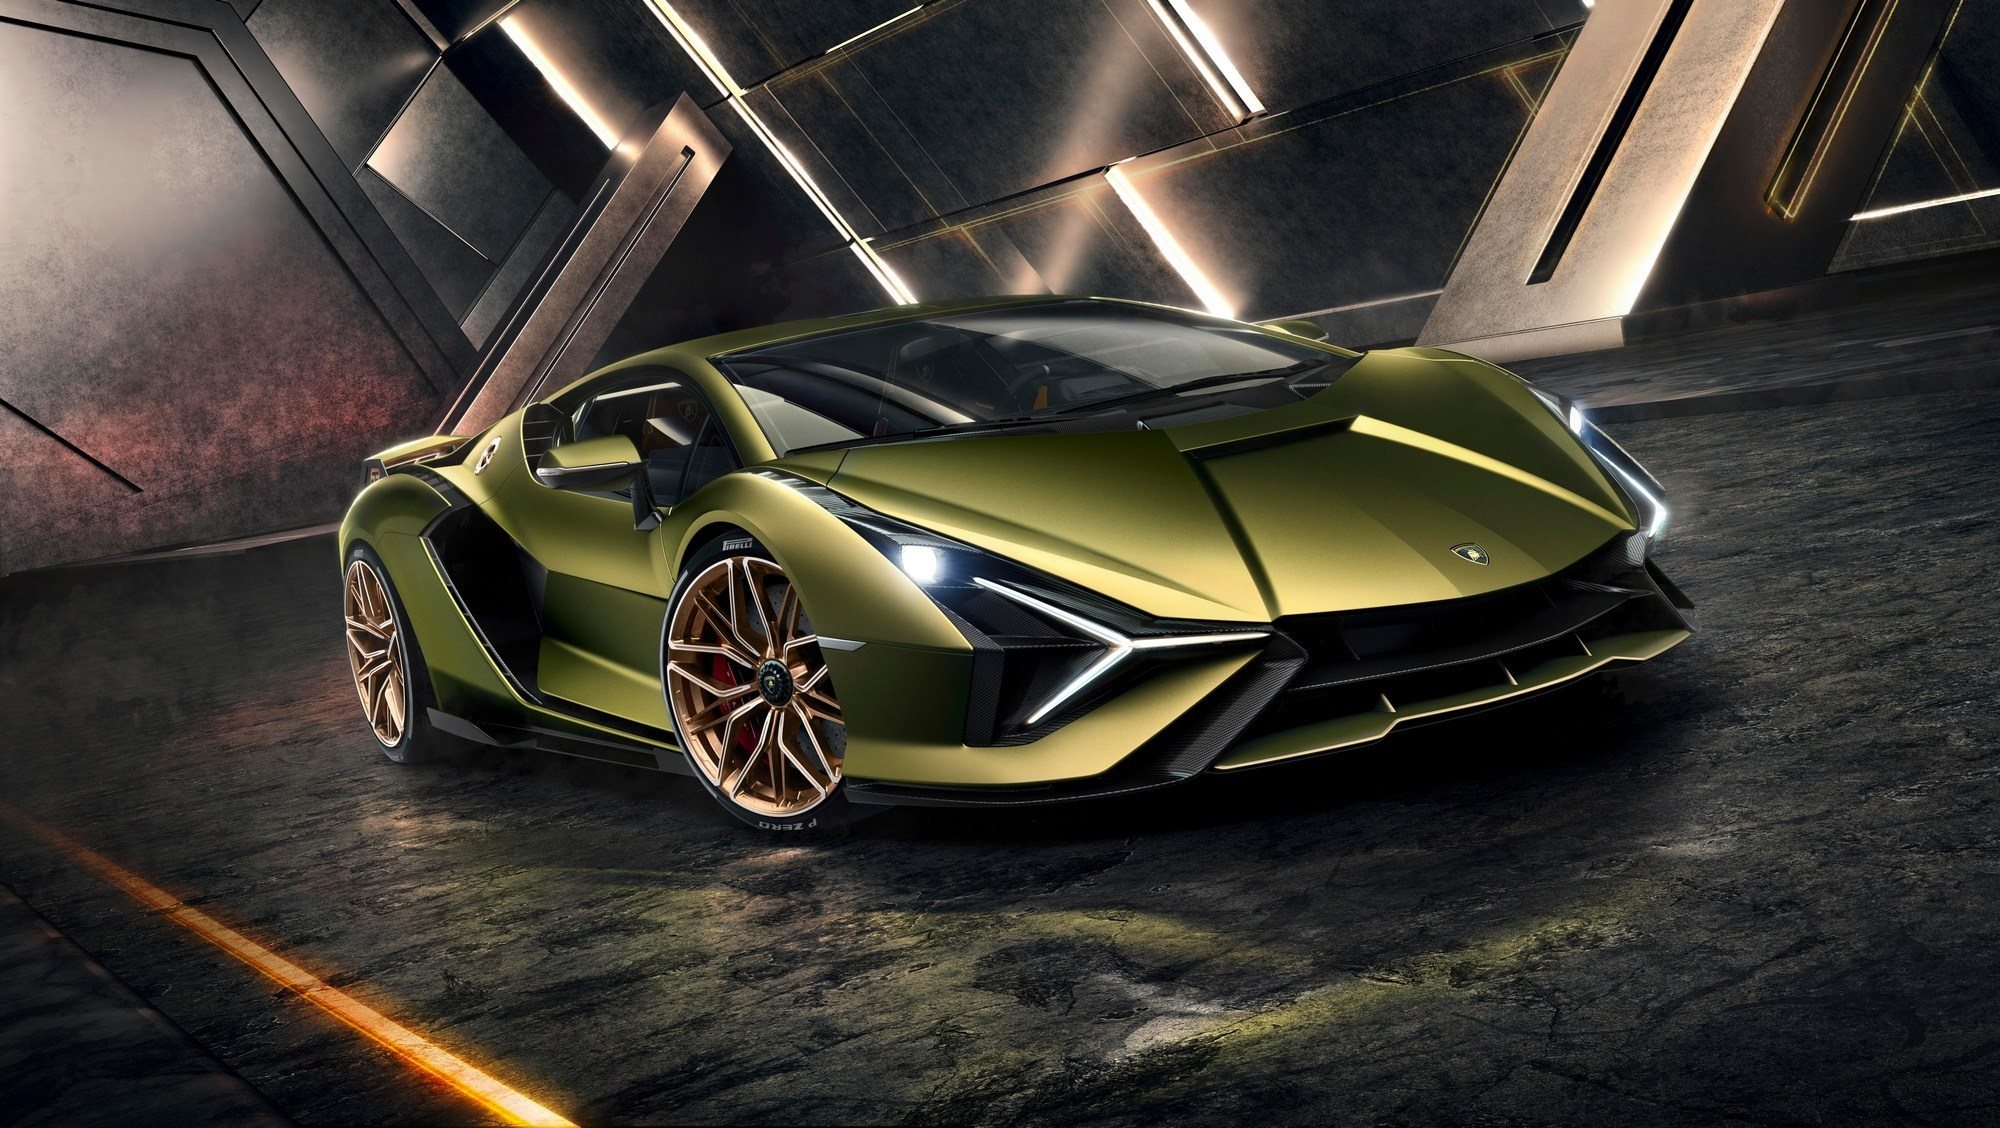 VW reportedly making moves for Lamborghini sale or spinoff